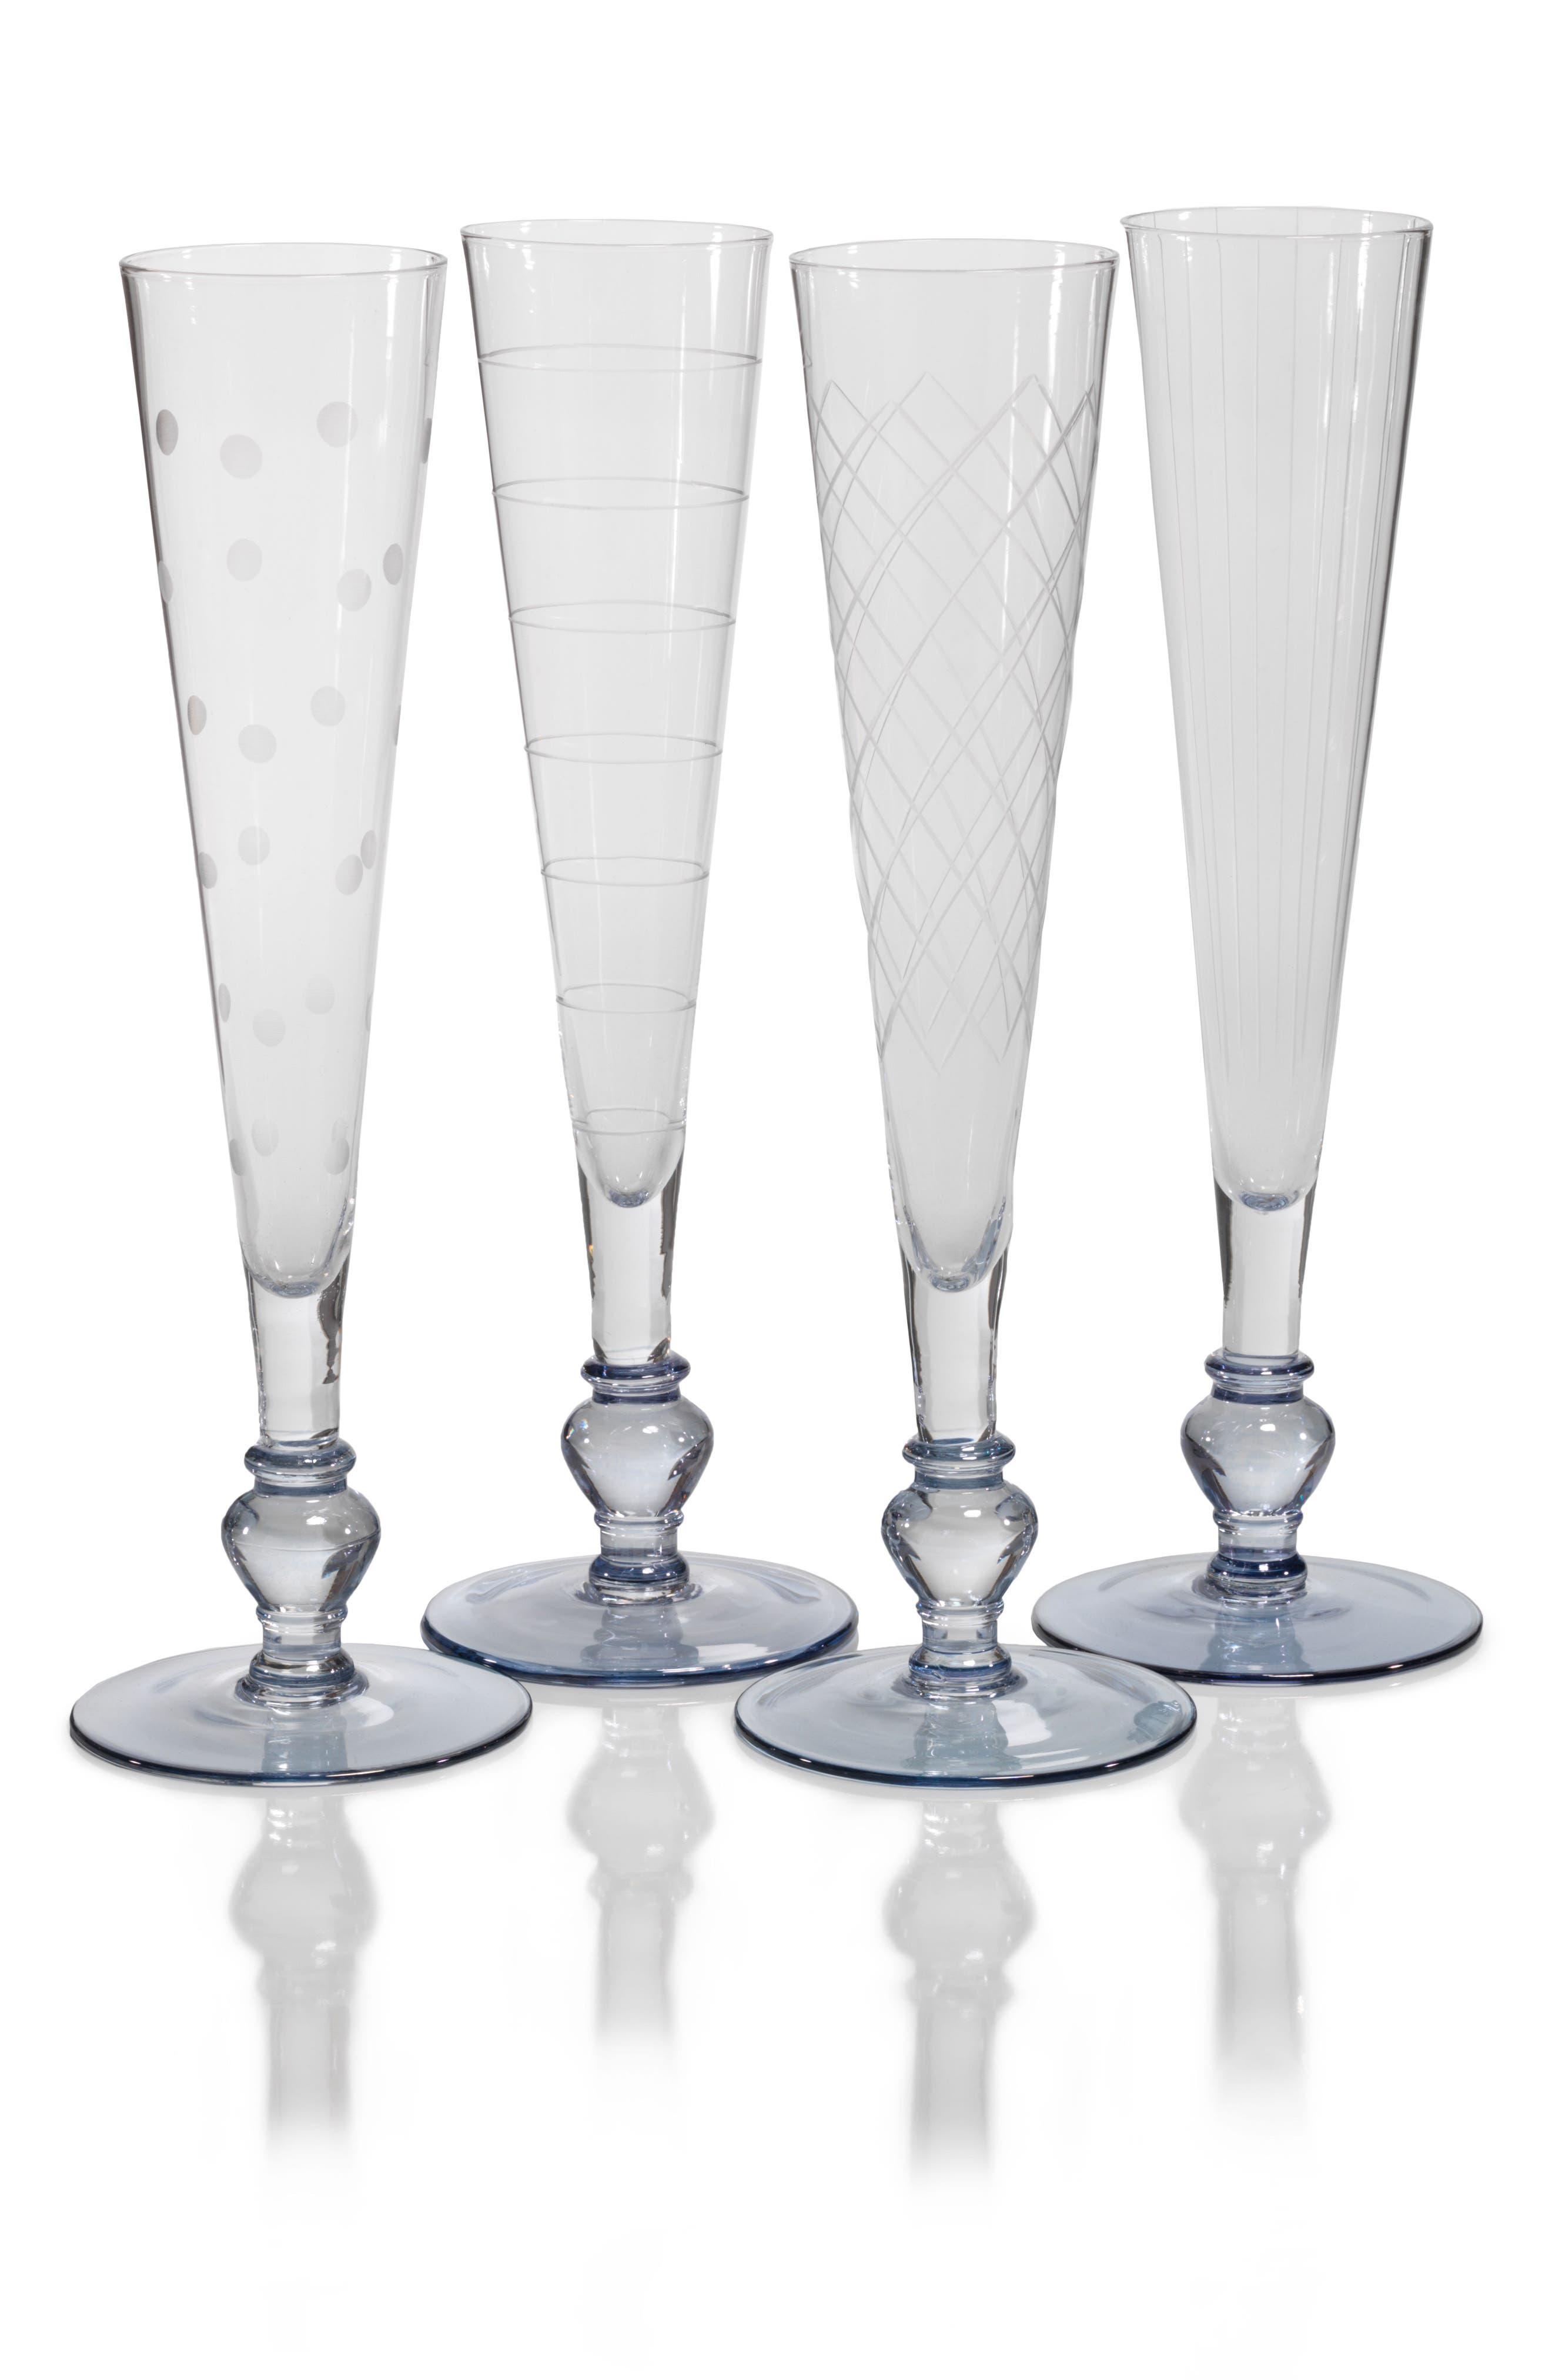 ZODAX Tatiana Set of 4 Champagne Flutes, Main, color, 400